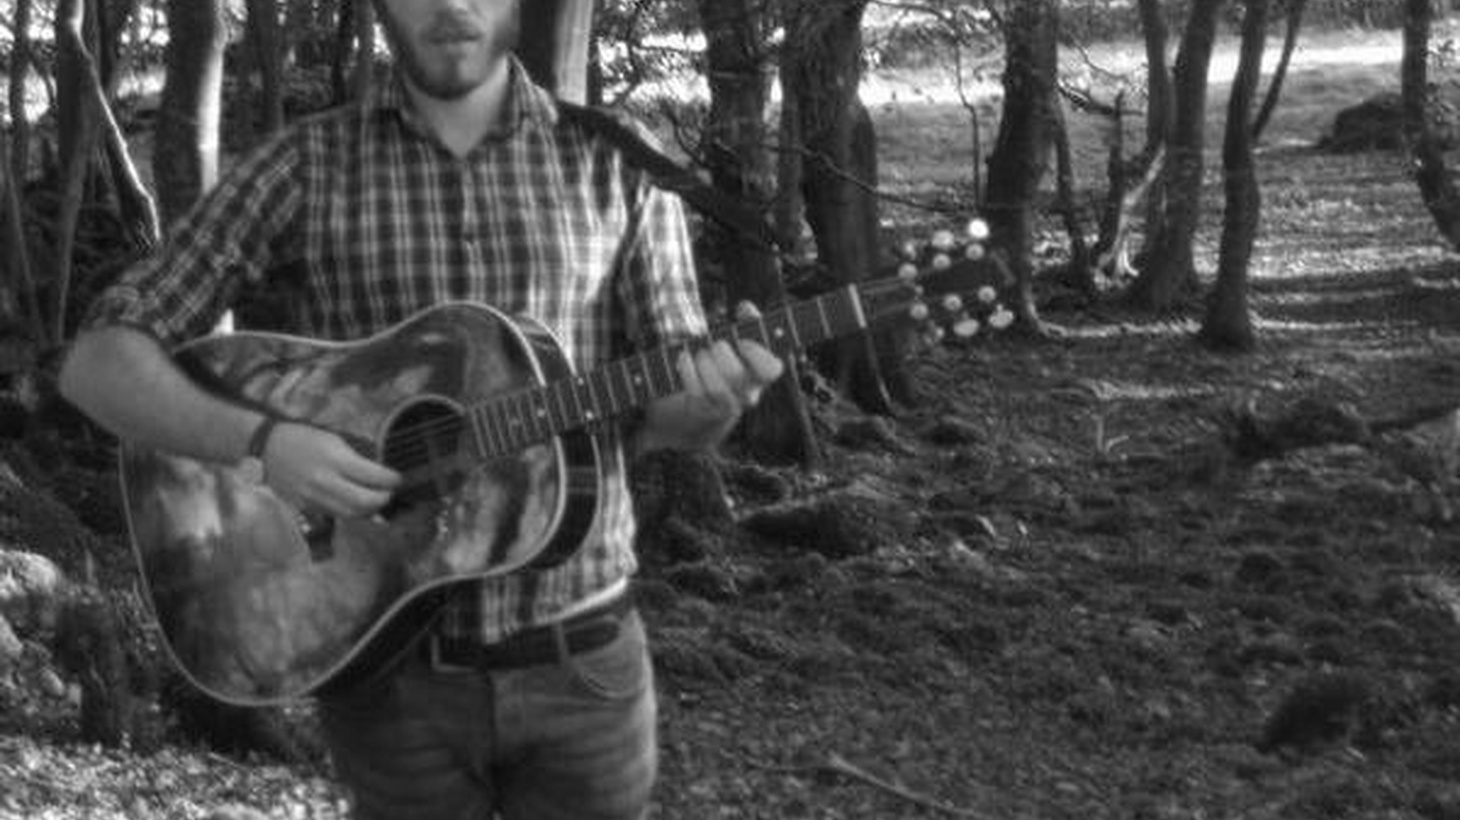 Irish singer James Vincent McMorrow is a breathtaking performer, as we witnessed at SXSW earlier this year....